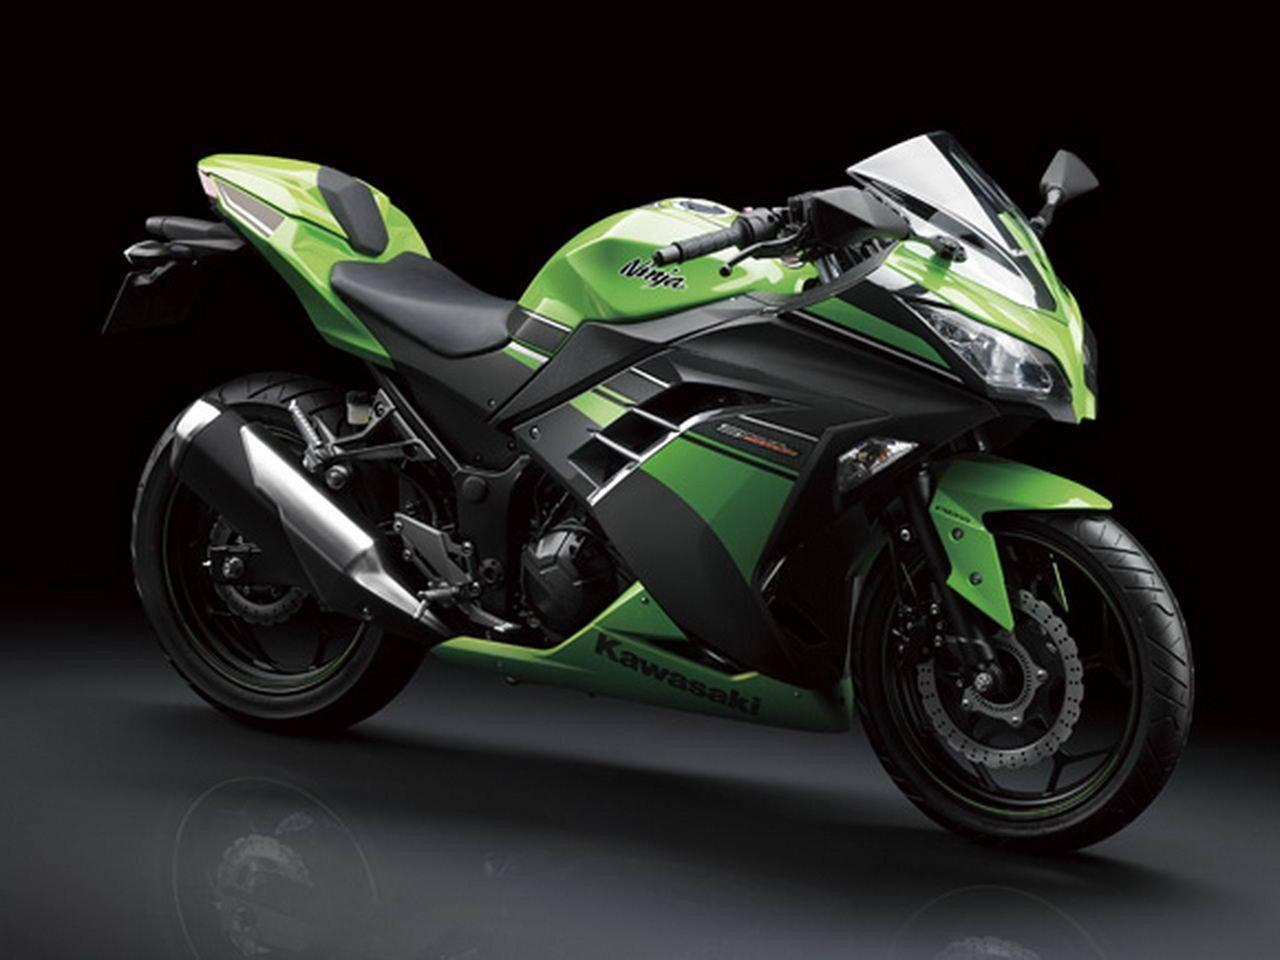 2016 kawasaki ninja 250r wallpapers - wallpaper cave